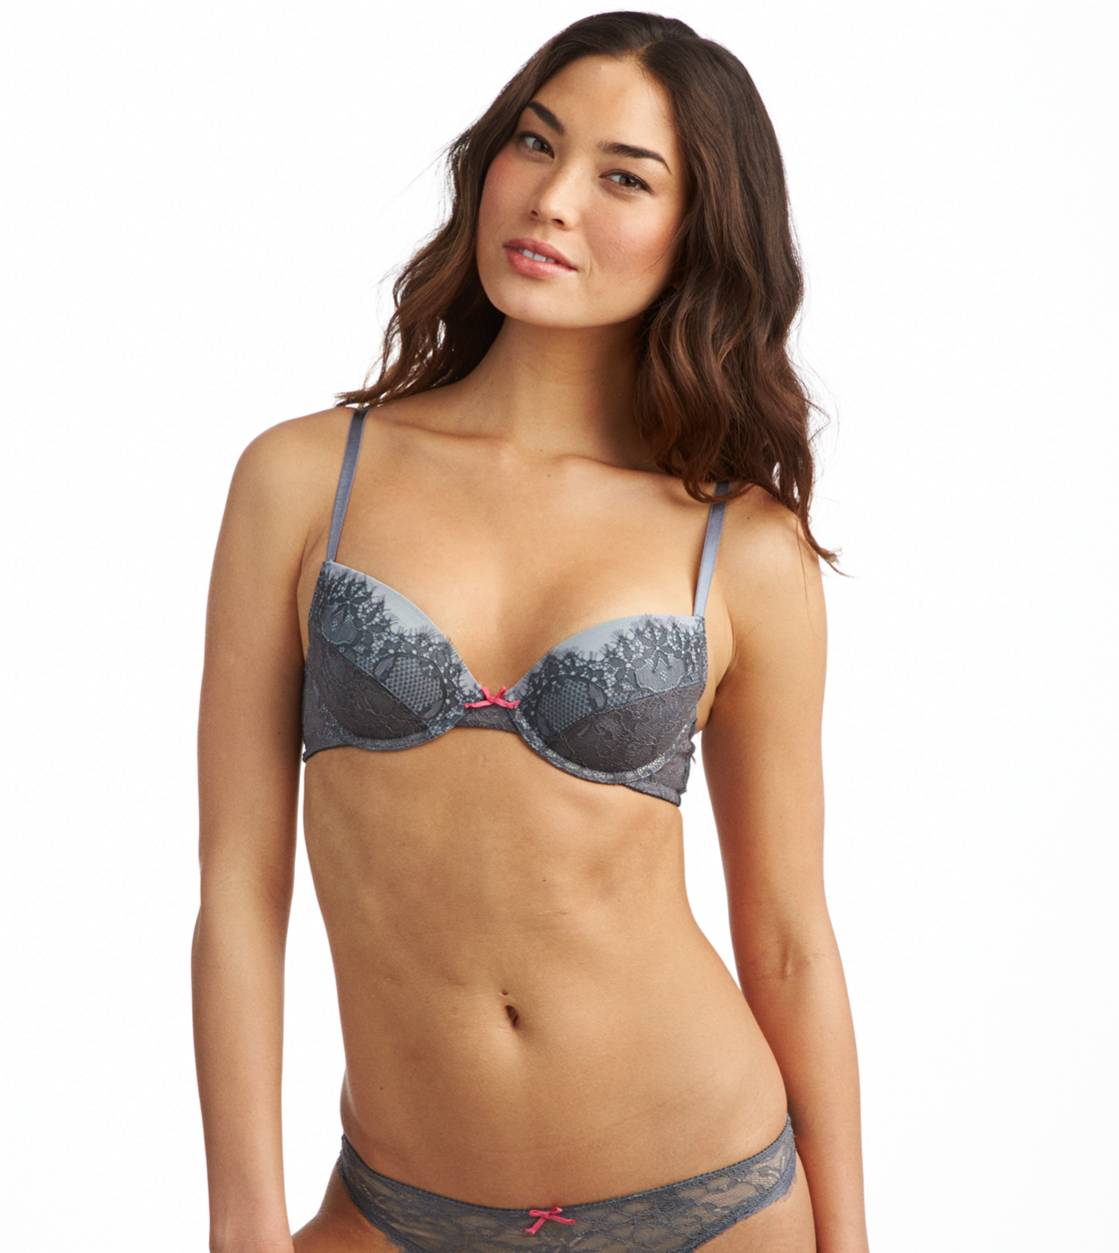 Stone Ella Gel Lace Pushup Bra